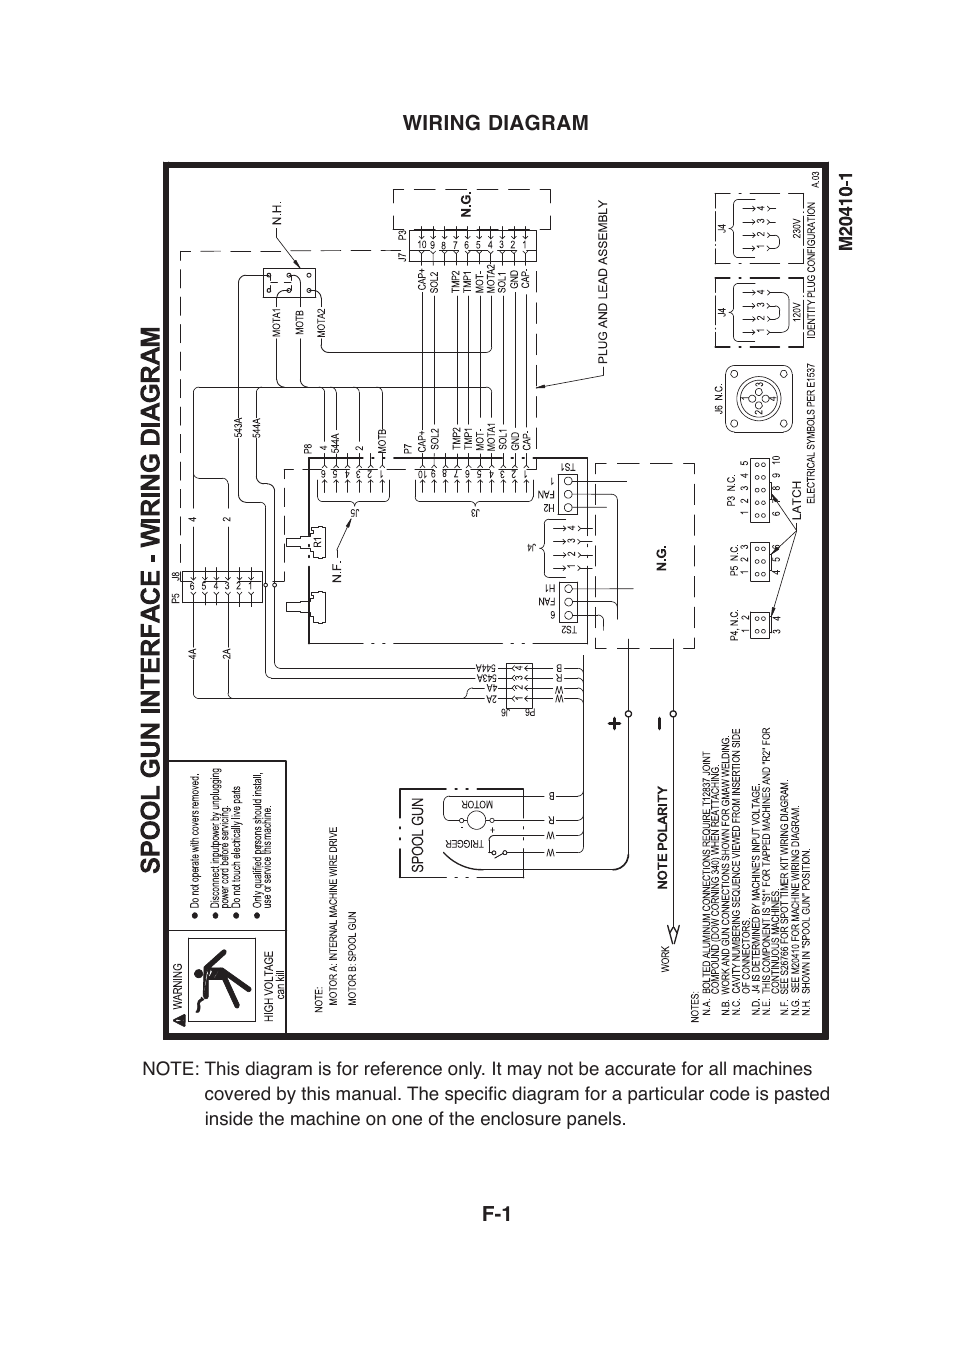 hight resolution of wiring diagram f 1 lincoln electric imt913 magnum 100sg spool gunwiring diagram f 1 lincoln electric